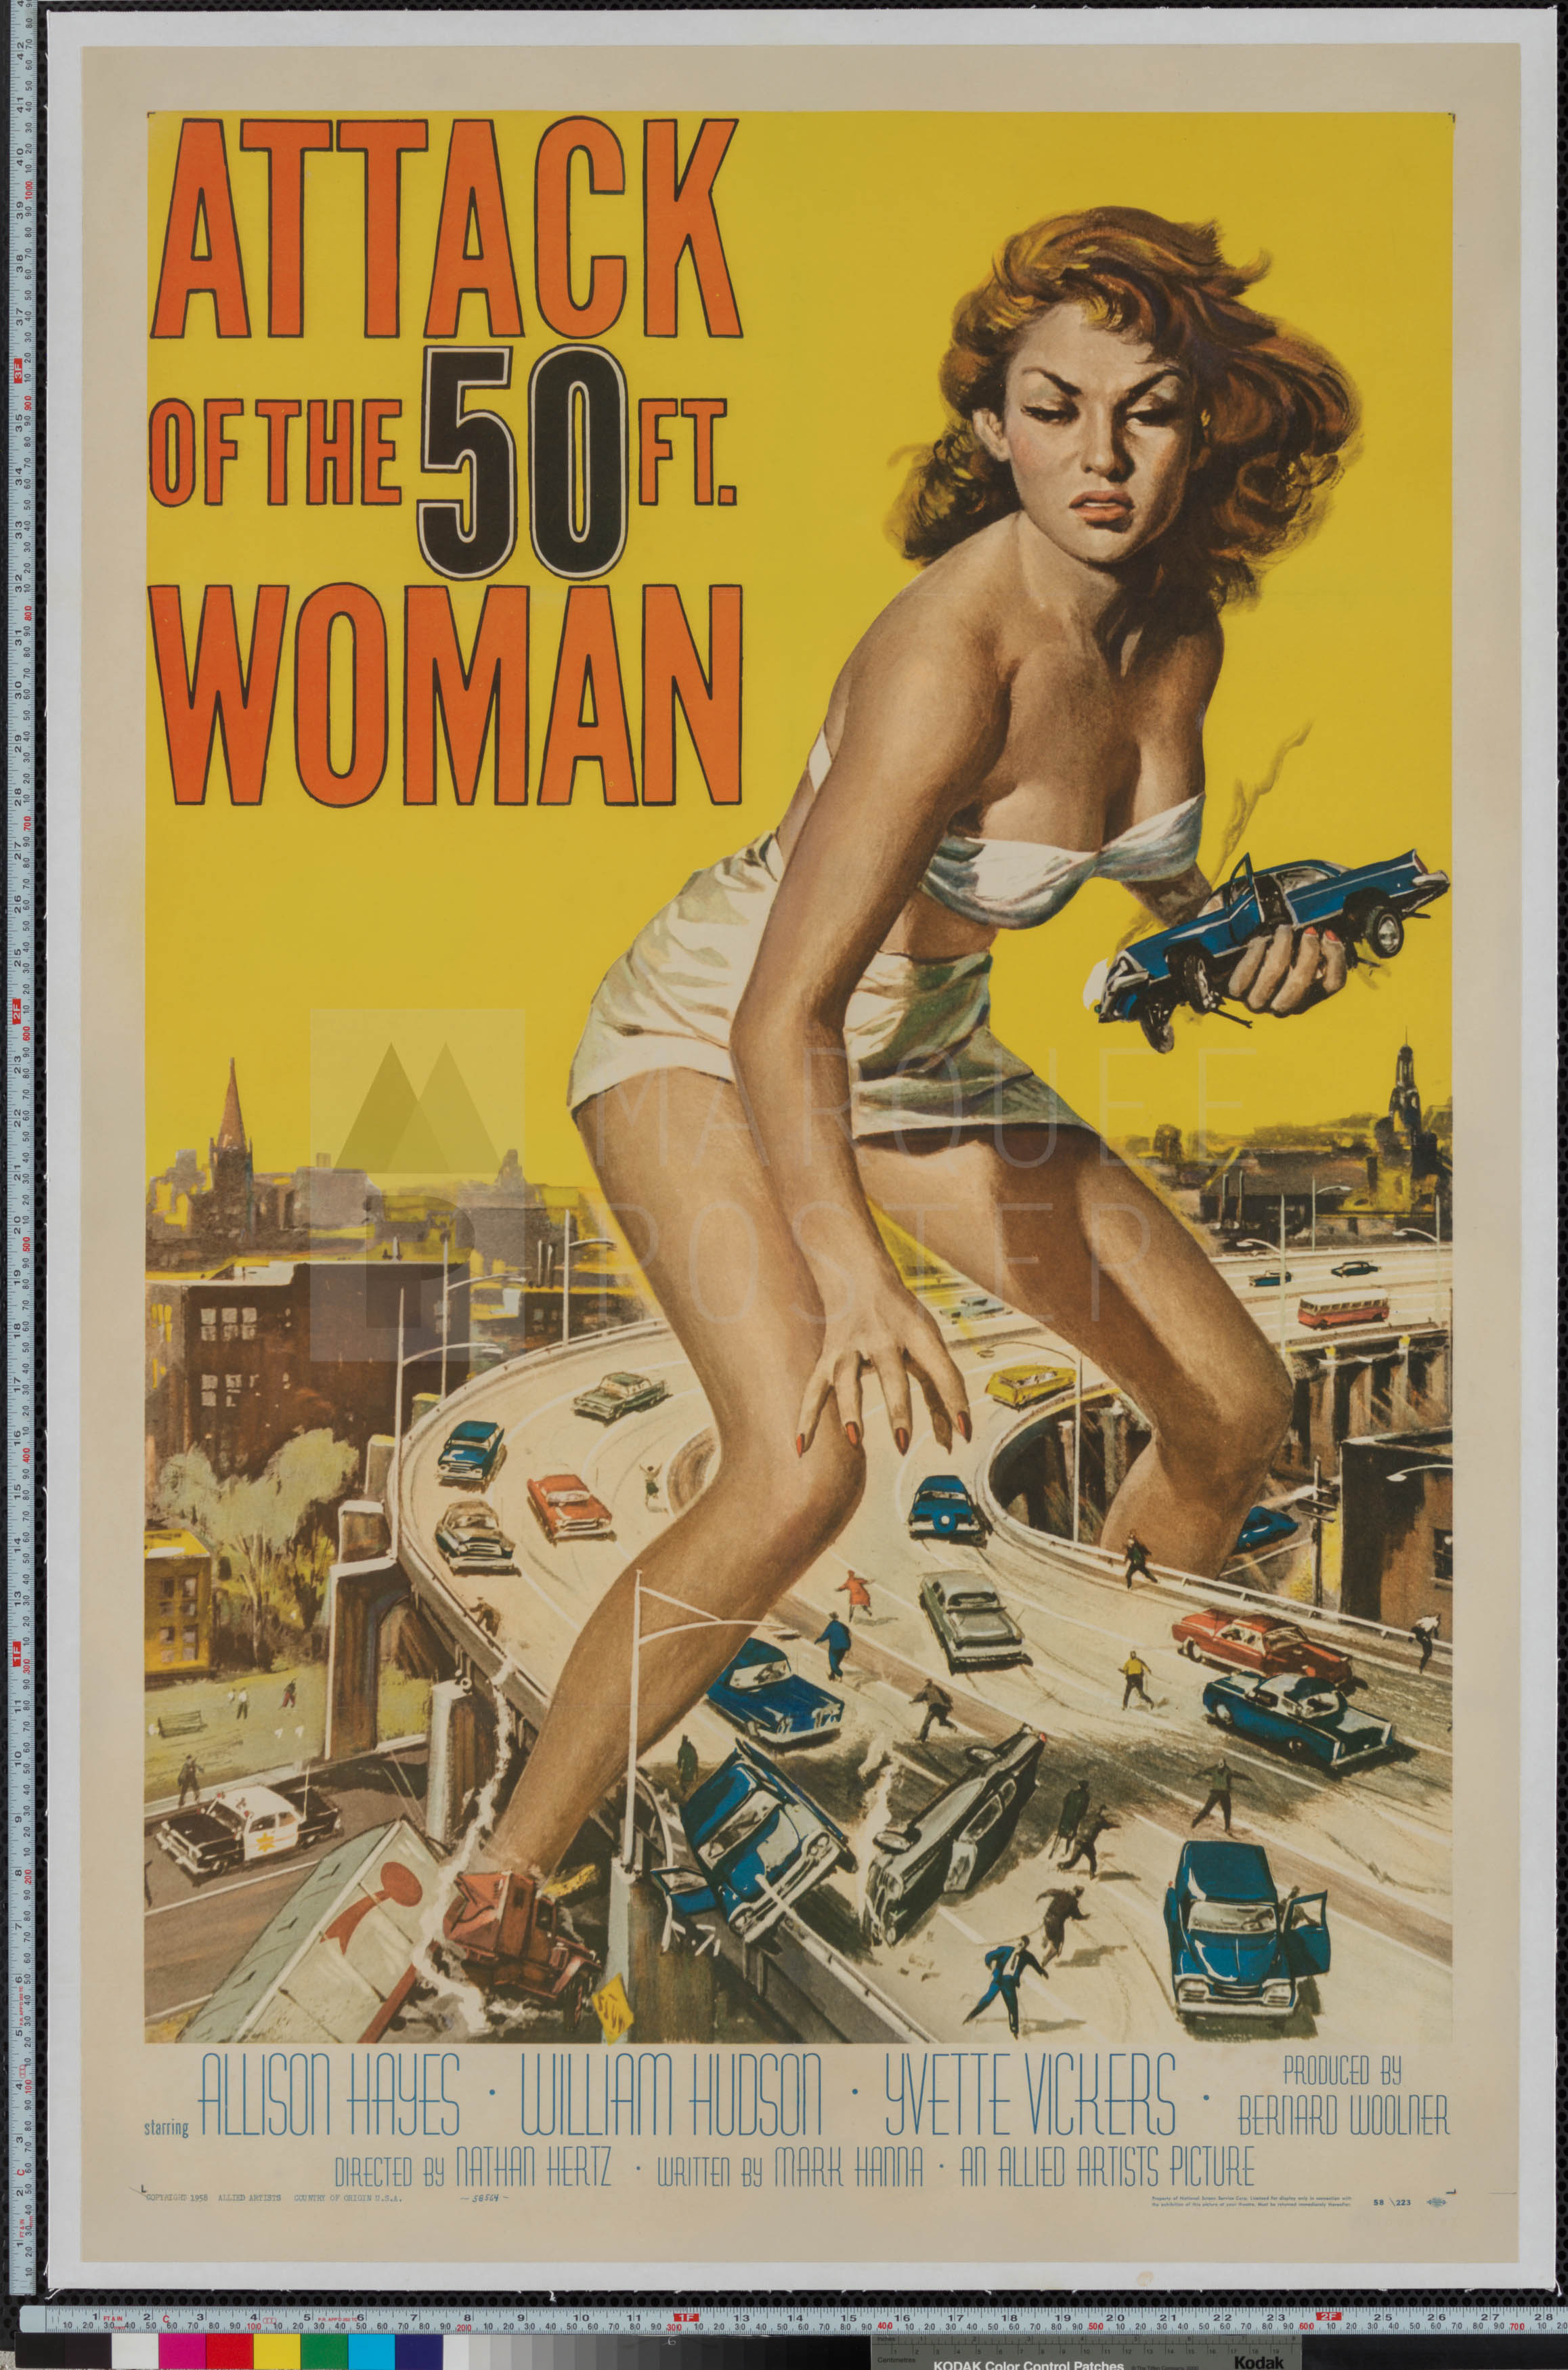 48-attack-of-the-50-foot-woman-us-1-sheet-1958-02